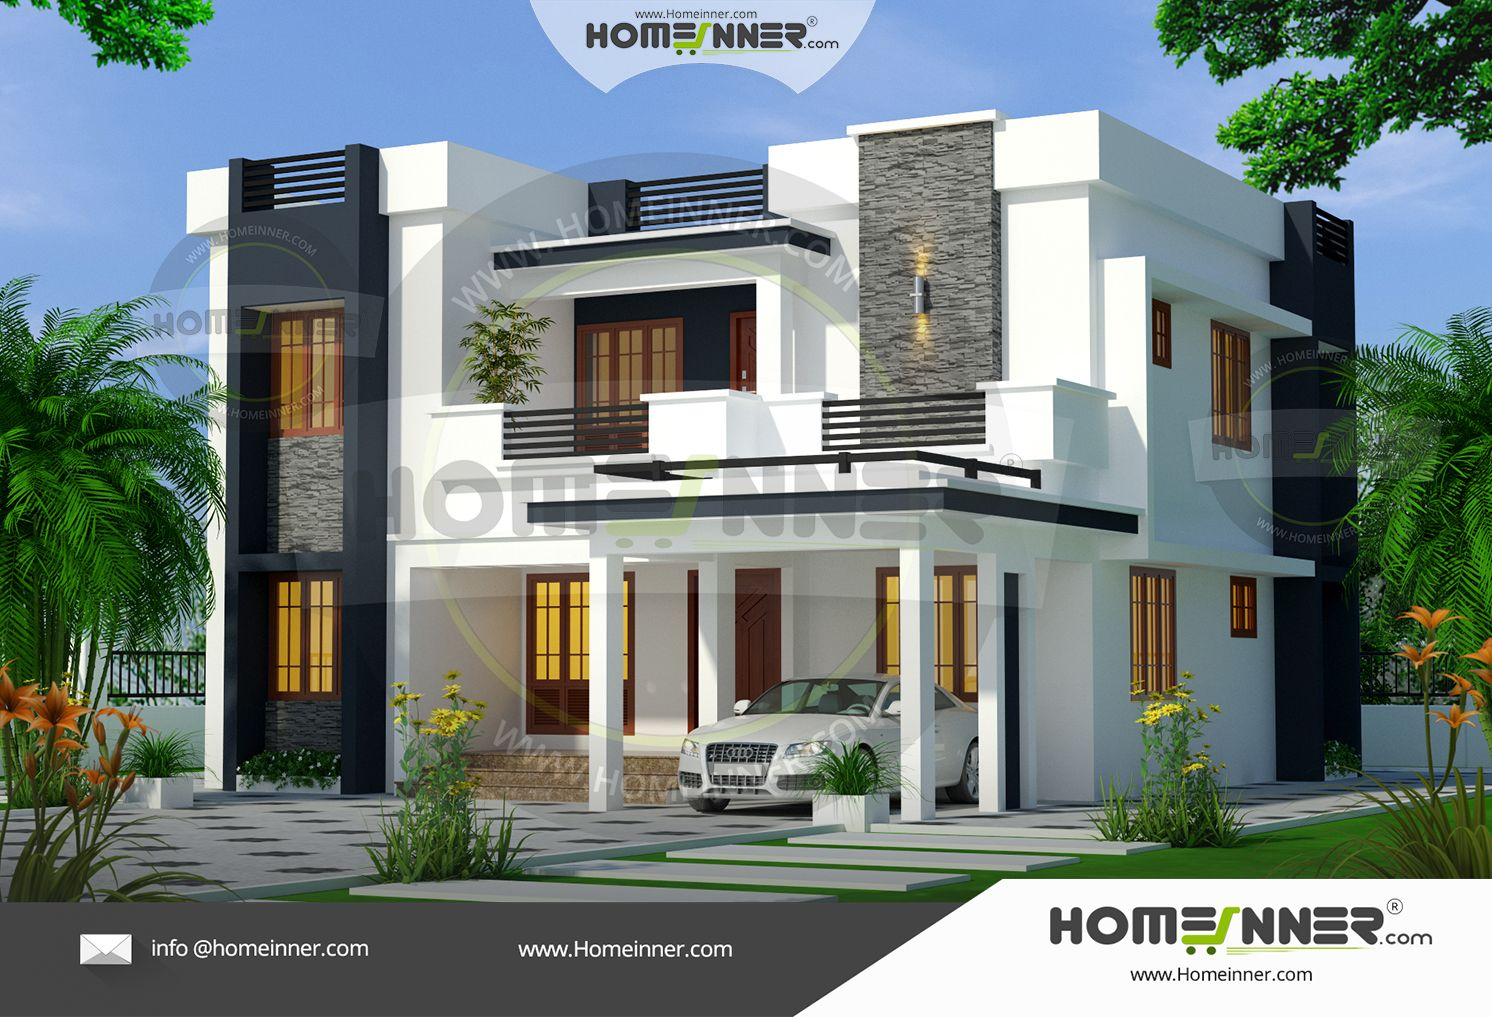 Home Design Online 4 Bedroom Contemporary Ultra Modern House Plans 1900 Sq Ft